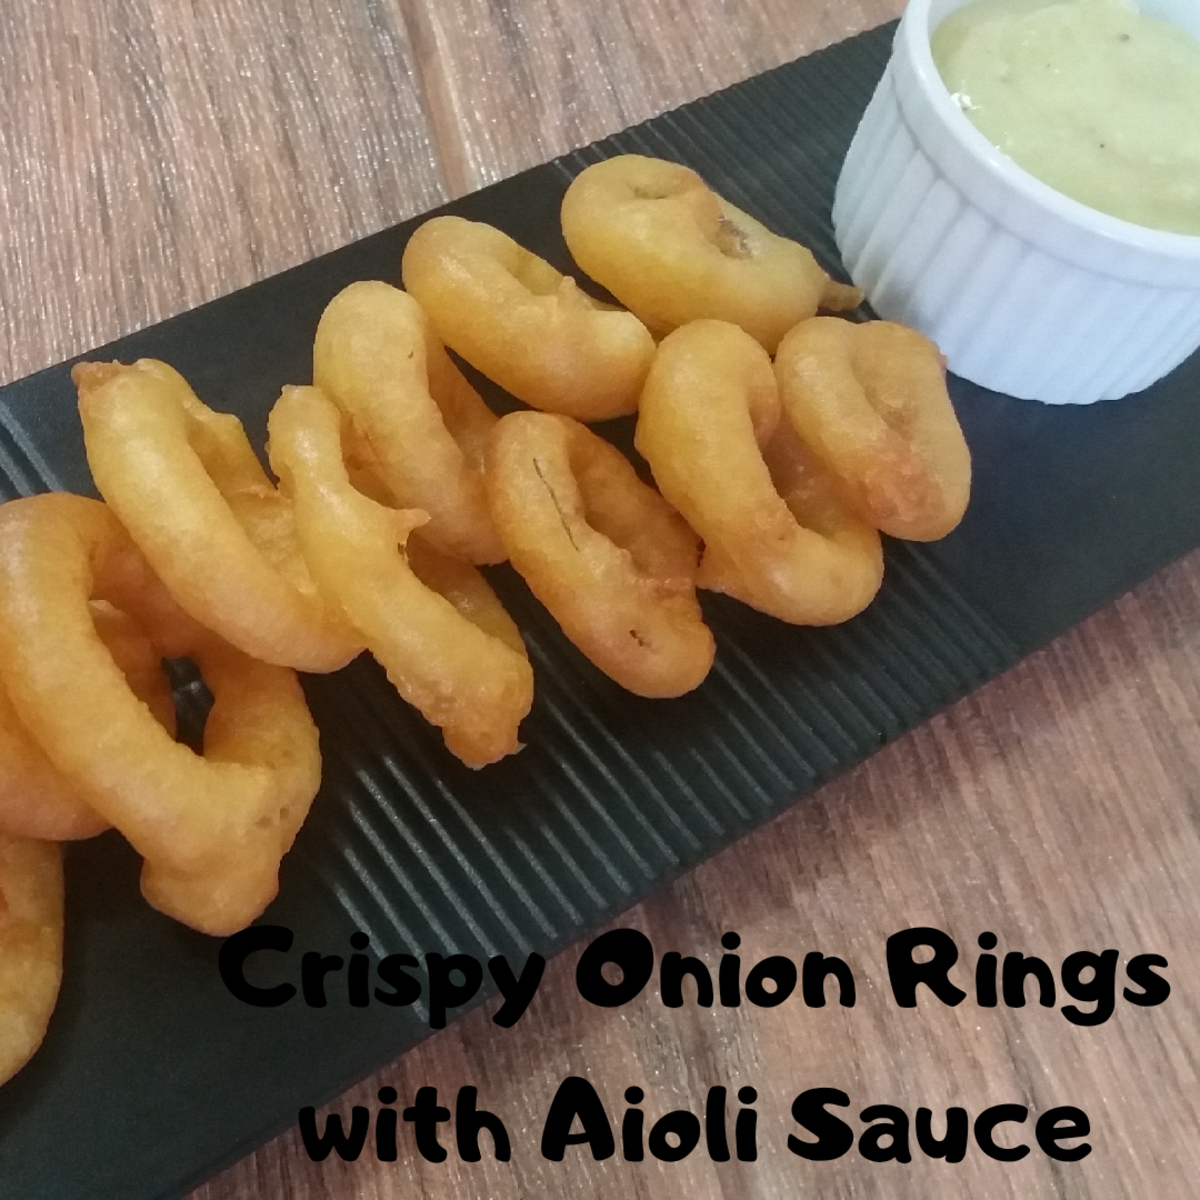 Crispy onion rings with aioli sauce